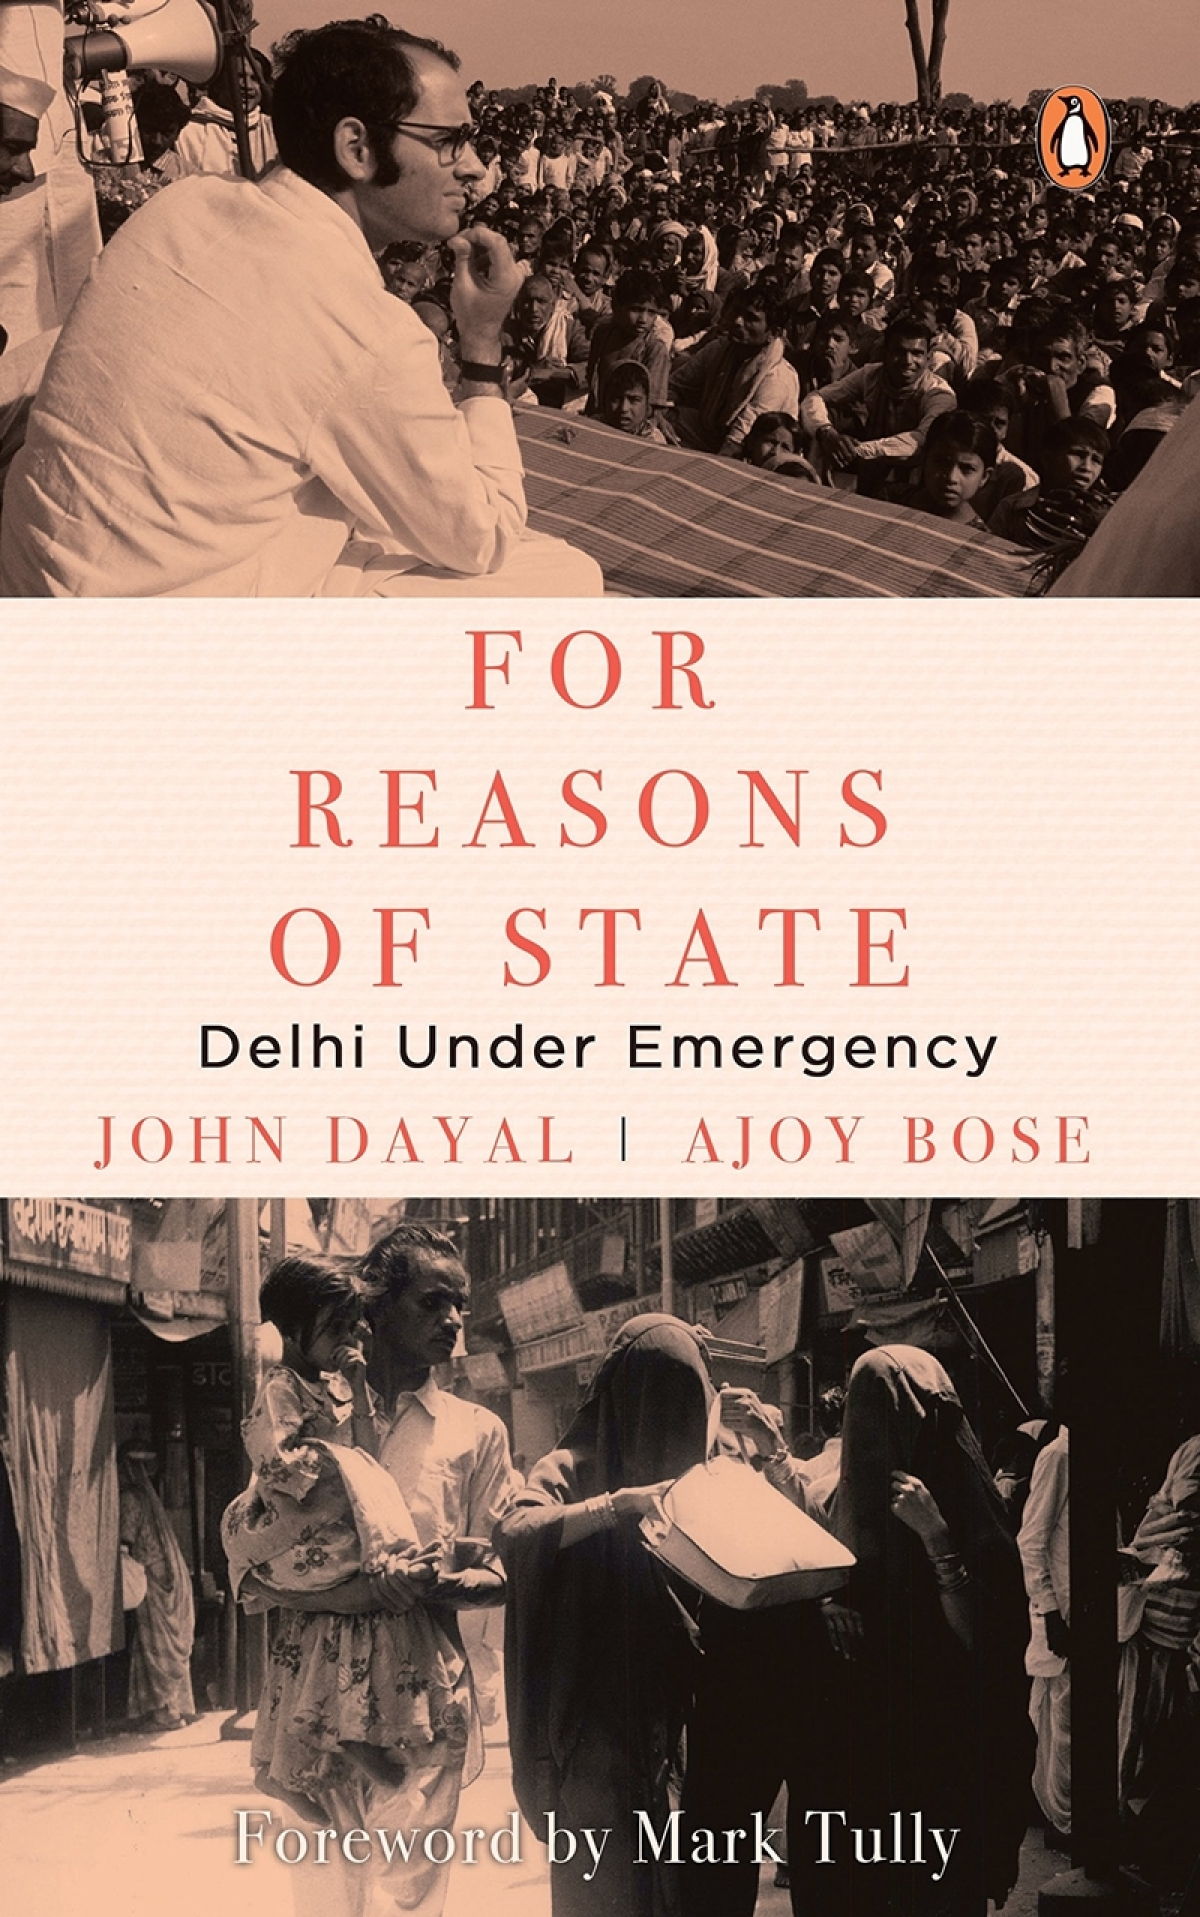 For Reasons of State: Delhi Under Emergency by Ajoy Bose and John Dayal-Review